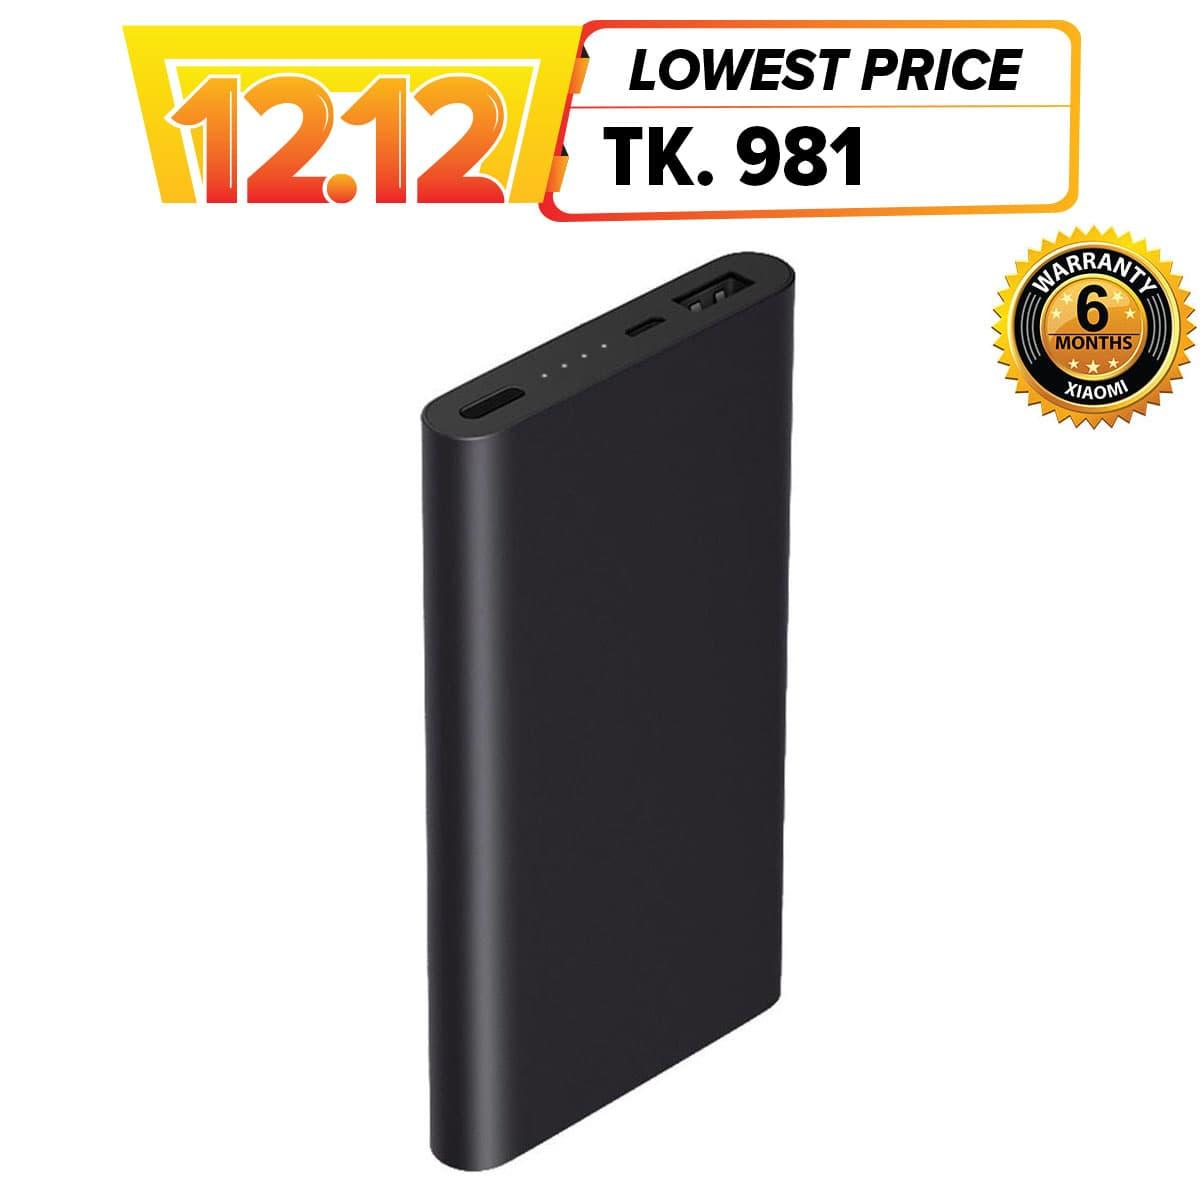 Power Bank Price In Bangladesh Mobile At Powerbank Portable Fan 2 1 Mi 10000mah V2 Black